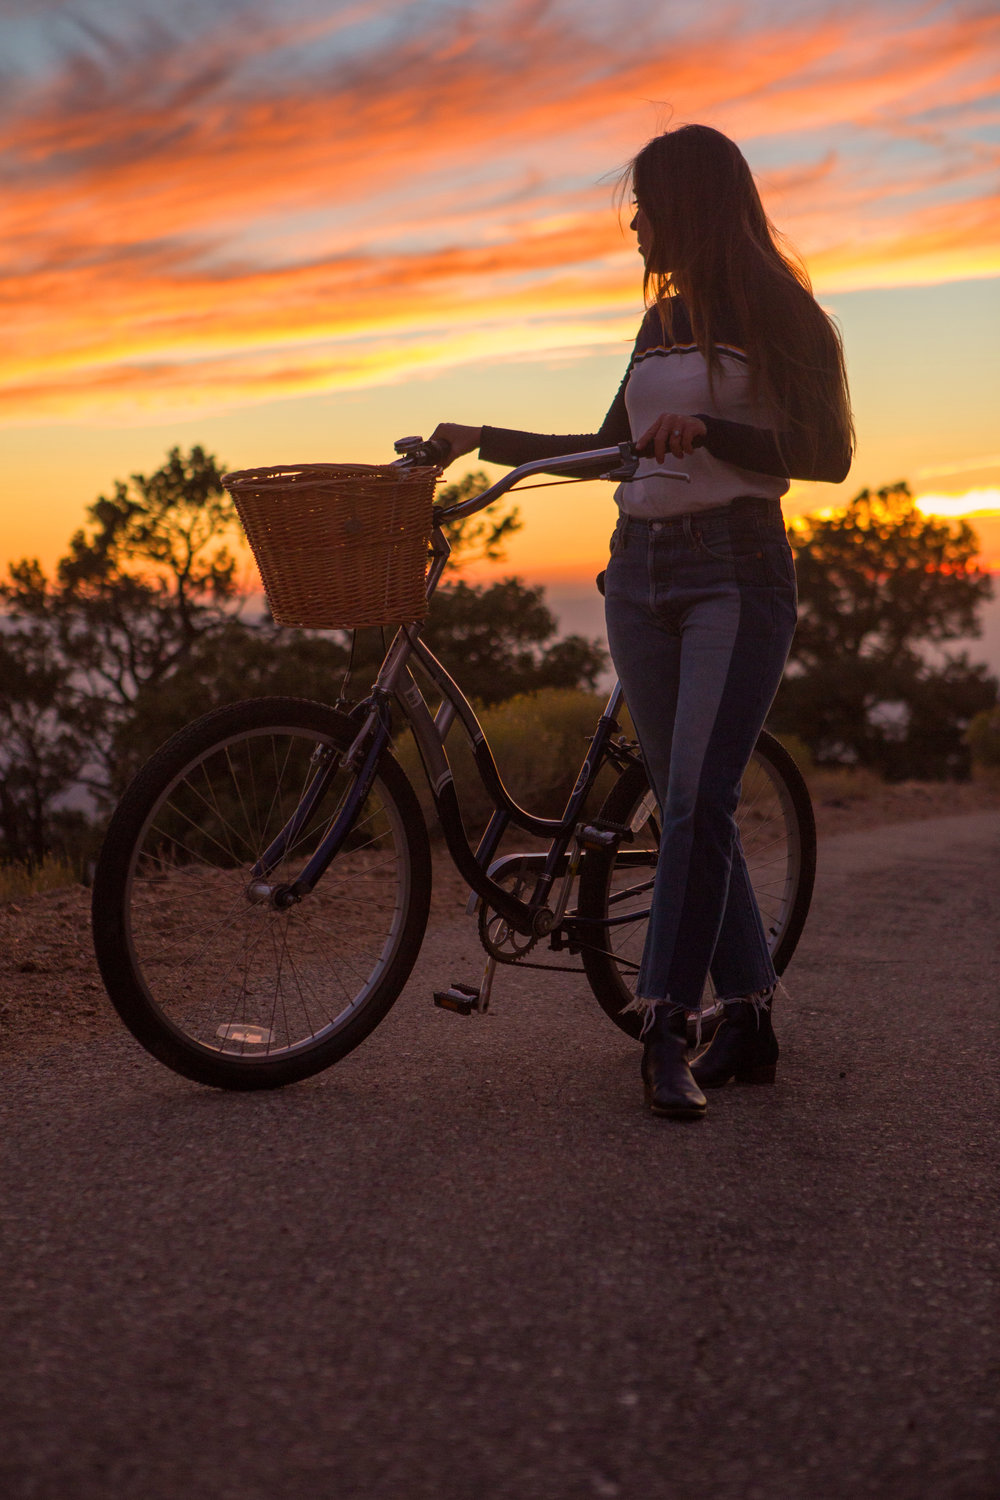 AstroBandit_JordanRose_Revere_Sunset_Bike_Ride_California_Mountains_6.jpg